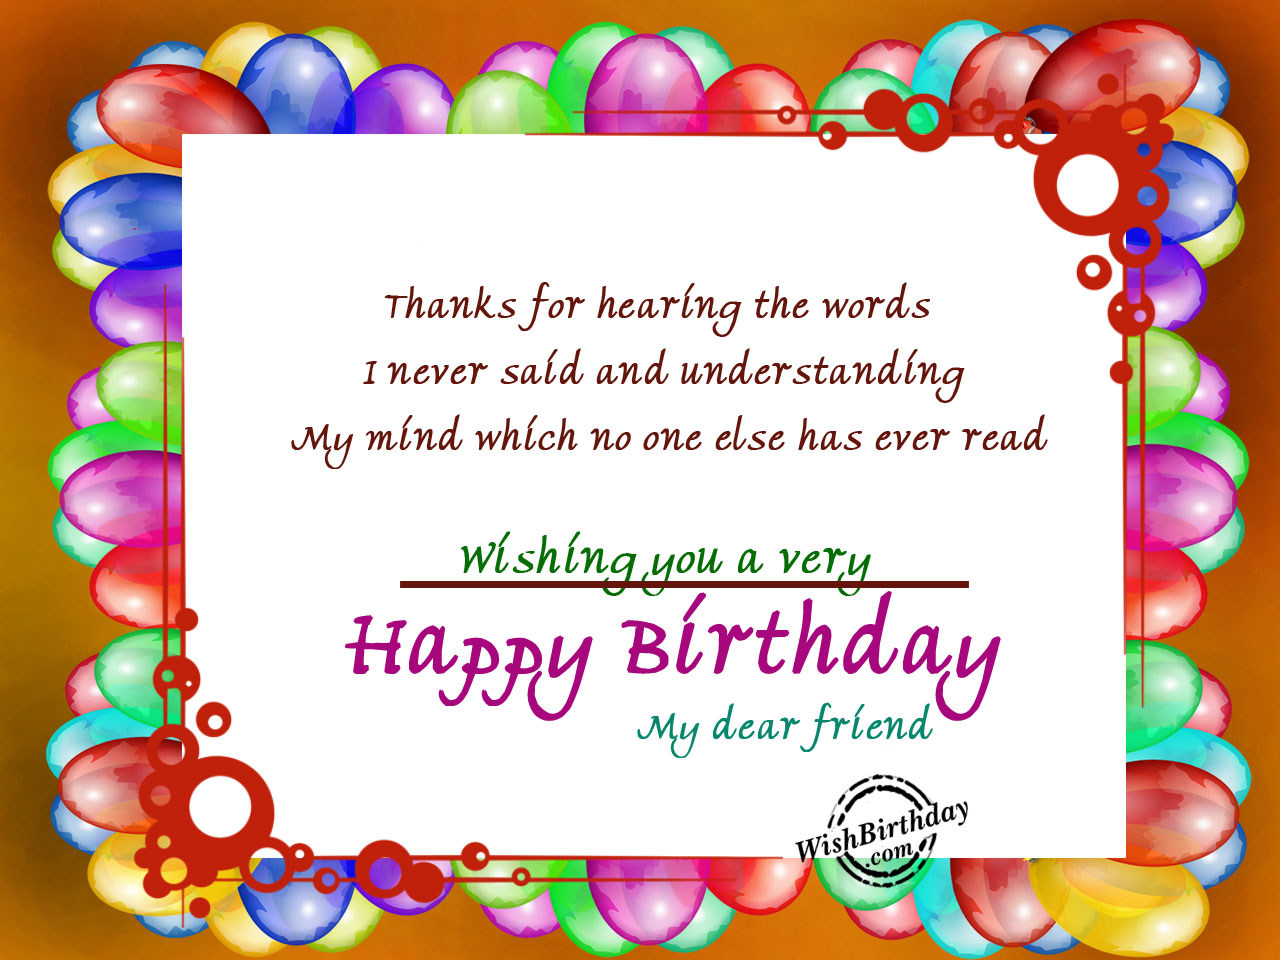 Birthday wishes for best friend birthday images pictures thanks for hearing the words m4hsunfo